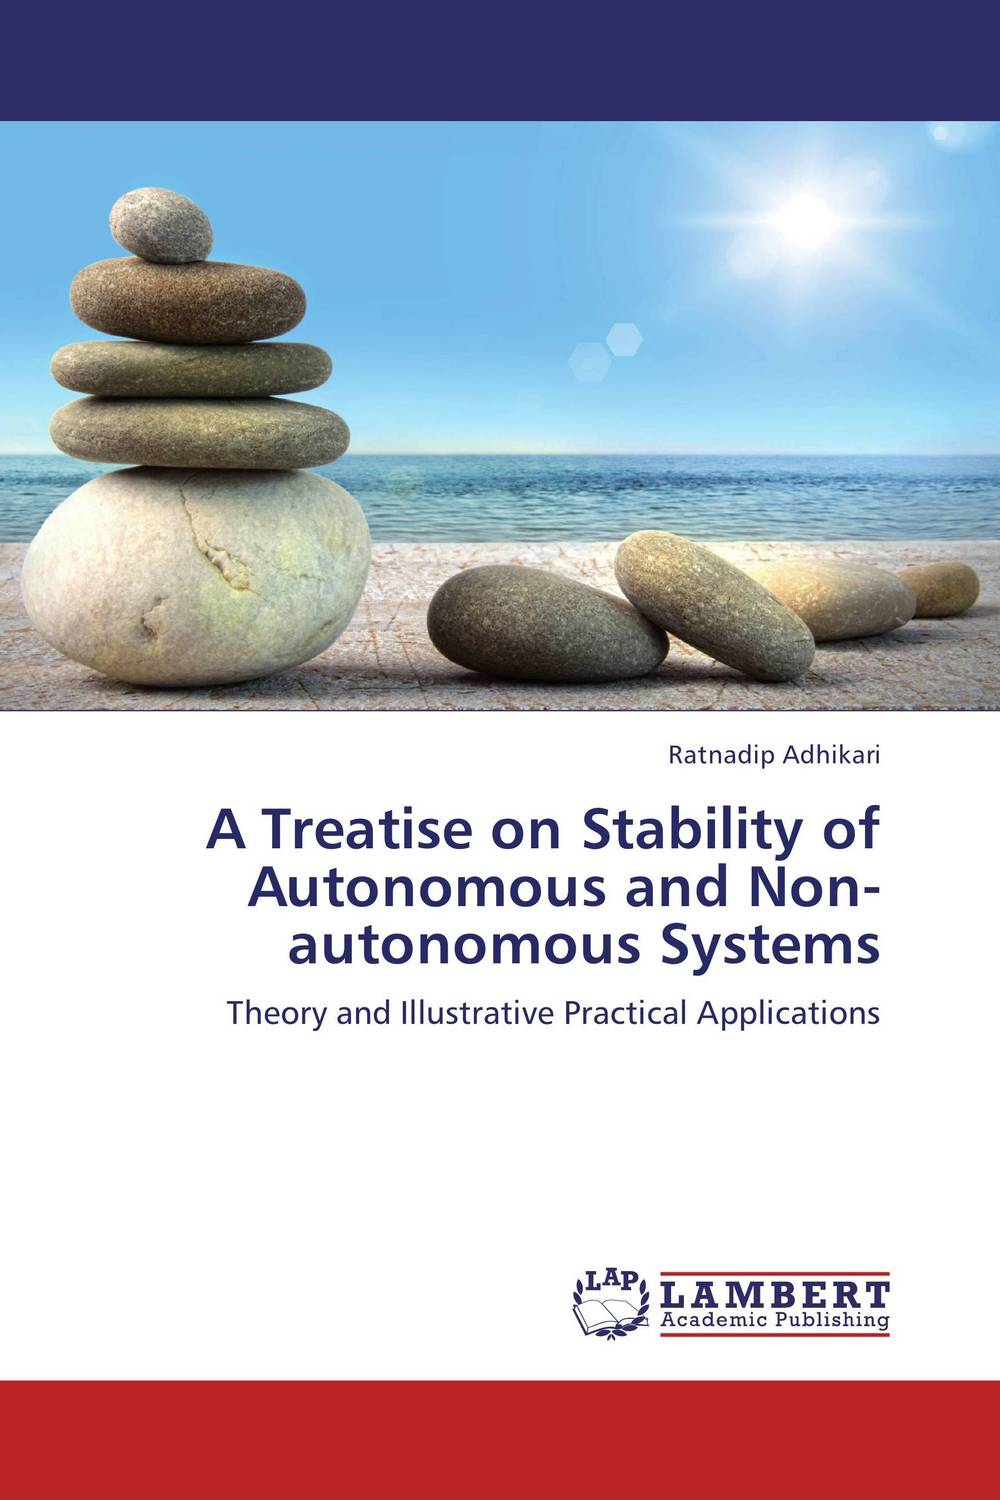 A Treatise on Stability of Autonomous and Non-autonomous Systems a treatise on stability of autonomous and non autonomous systems